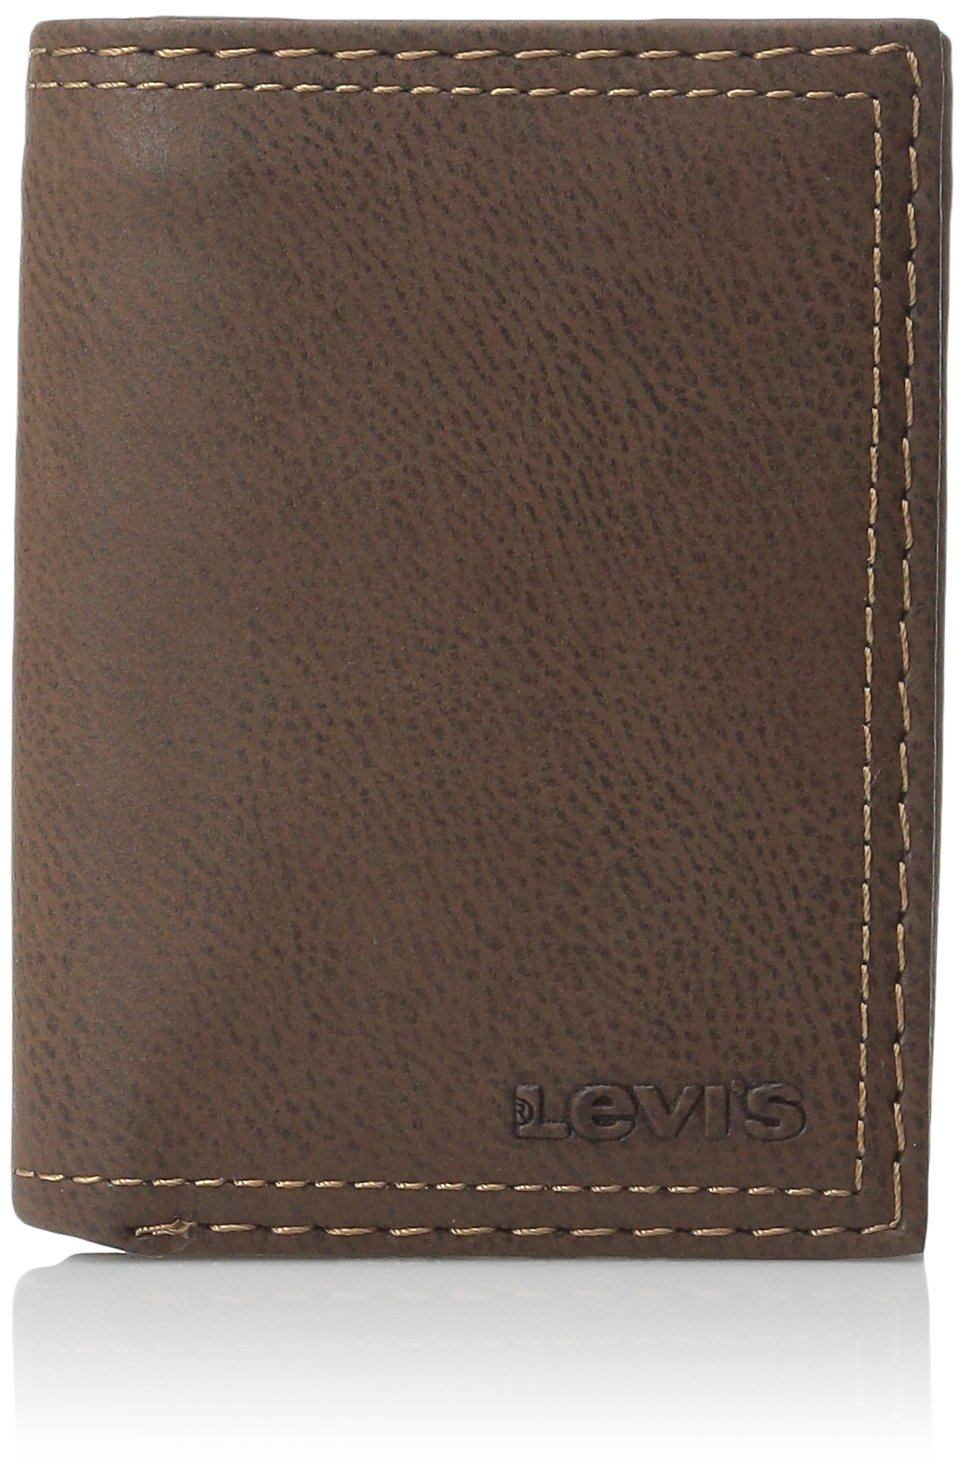 Levi's Men's Trifold Wallet – Sleek and Slim Includes ID Window and Credit Card Holder